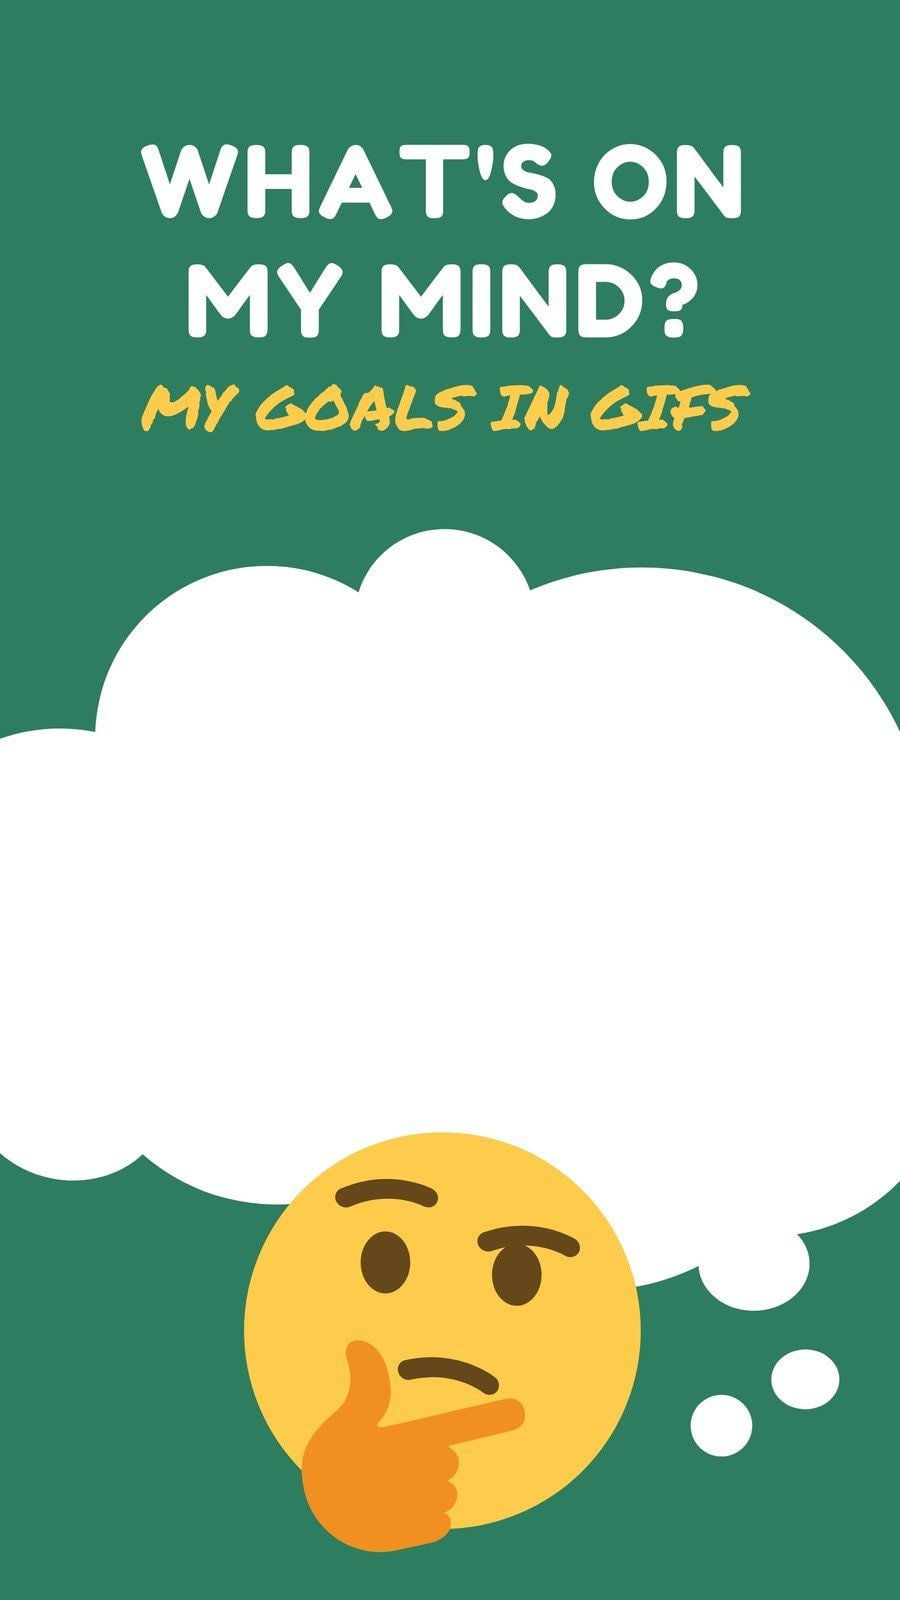 Green and Yellow Artistic GIF Challenge Goals Interactive Instagram Story